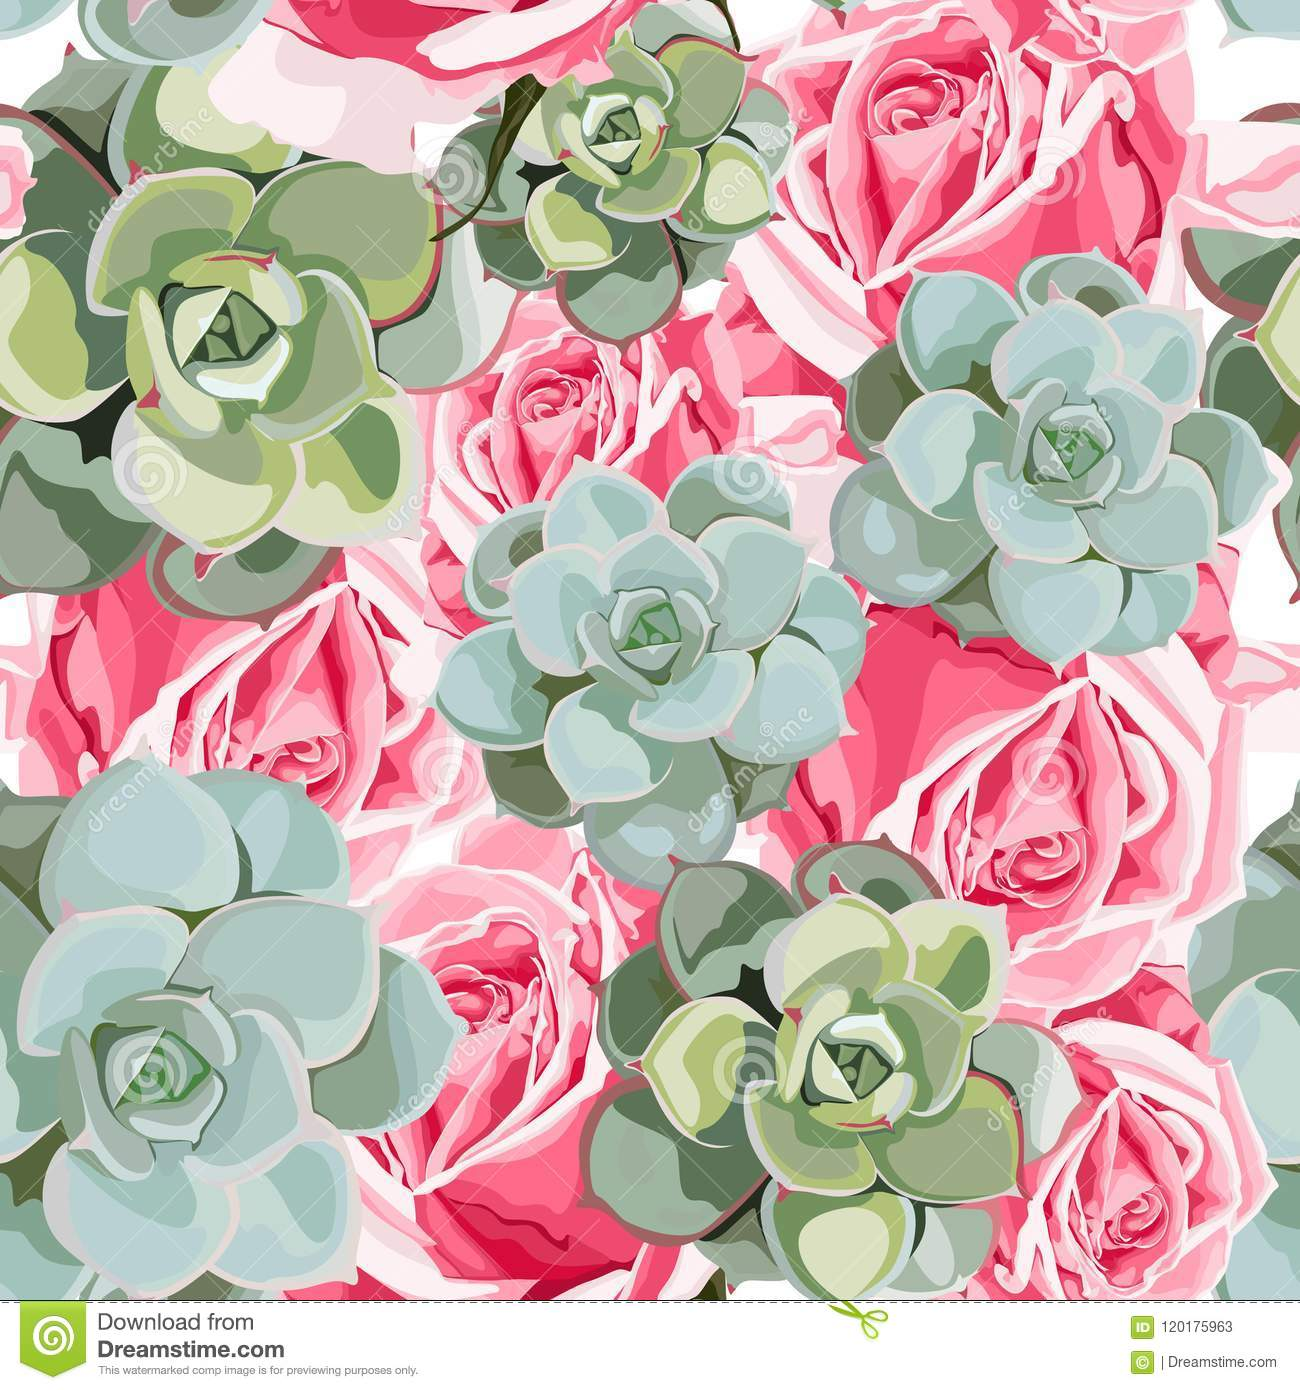 Vector spring flower seamless pattern with succulents and pink roses. Elegant tender design.